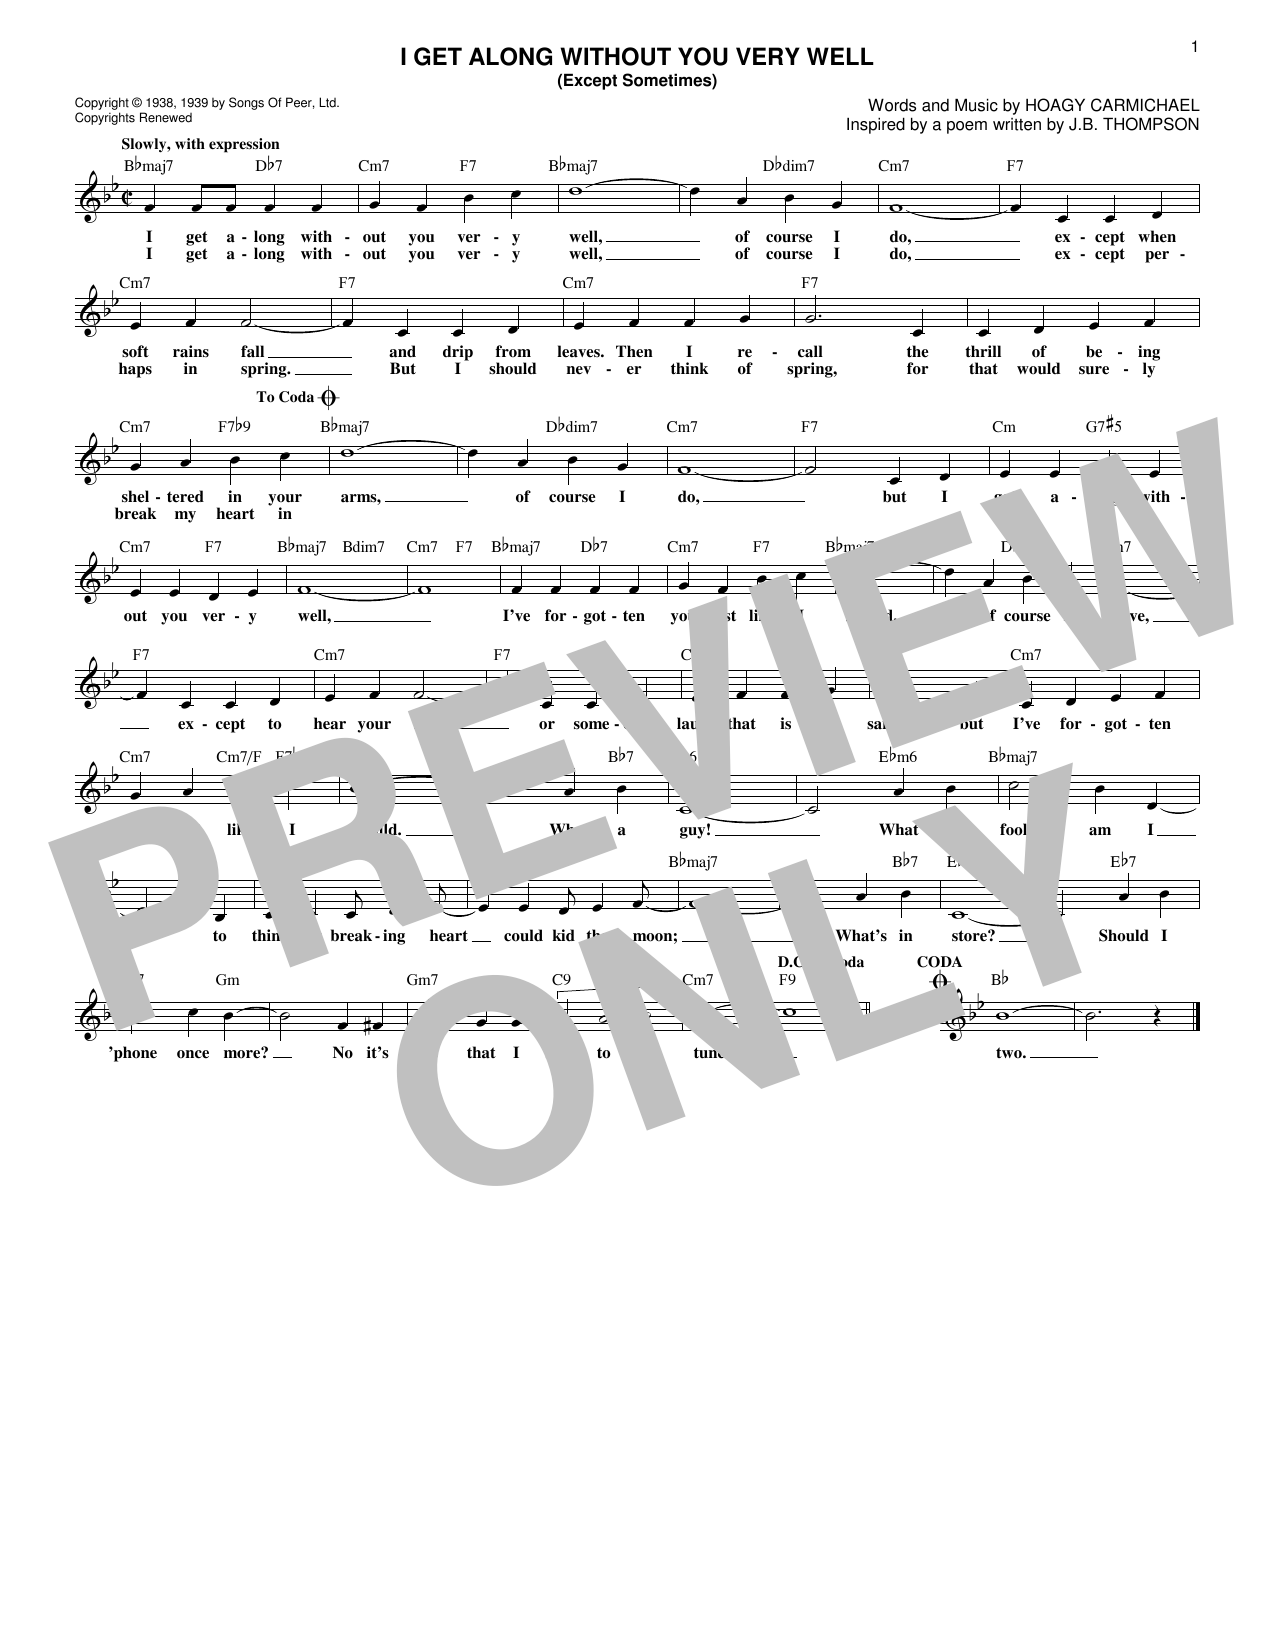 I Get Along Without You Very Well (Except Sometimes) Sheet Music